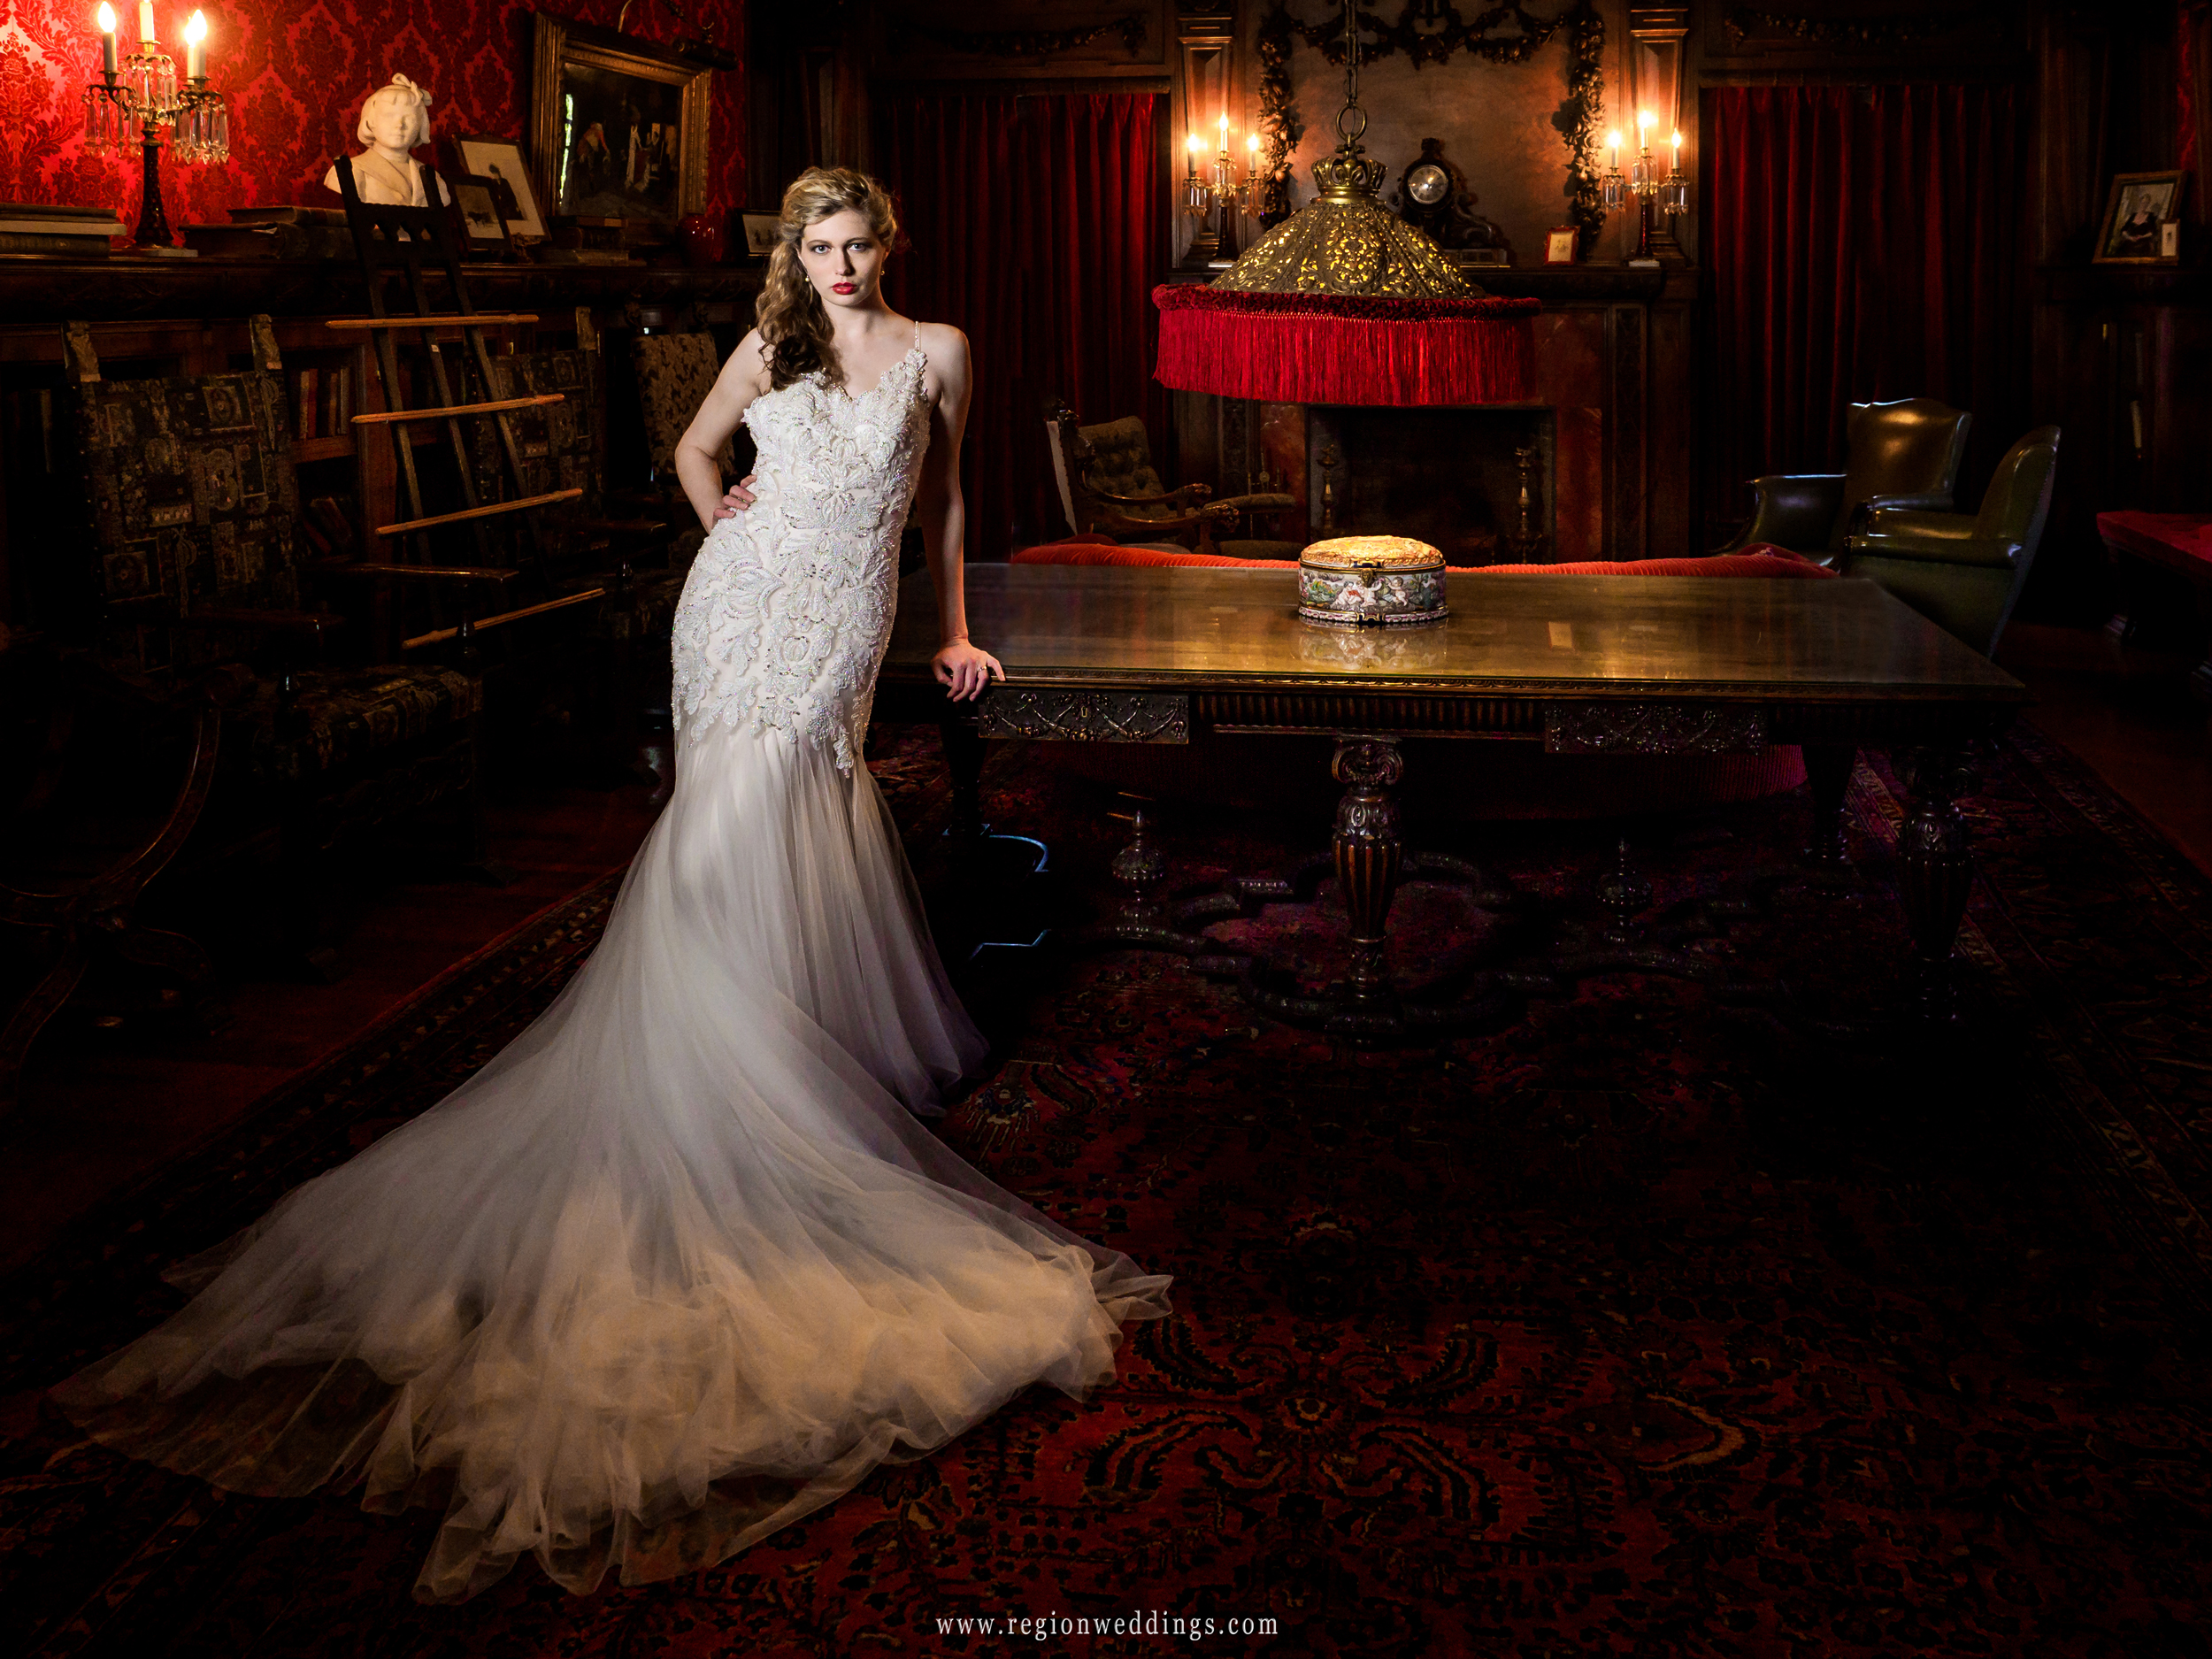 Beautiful bride in the lounging room at Barker Mansion in Michigan City.